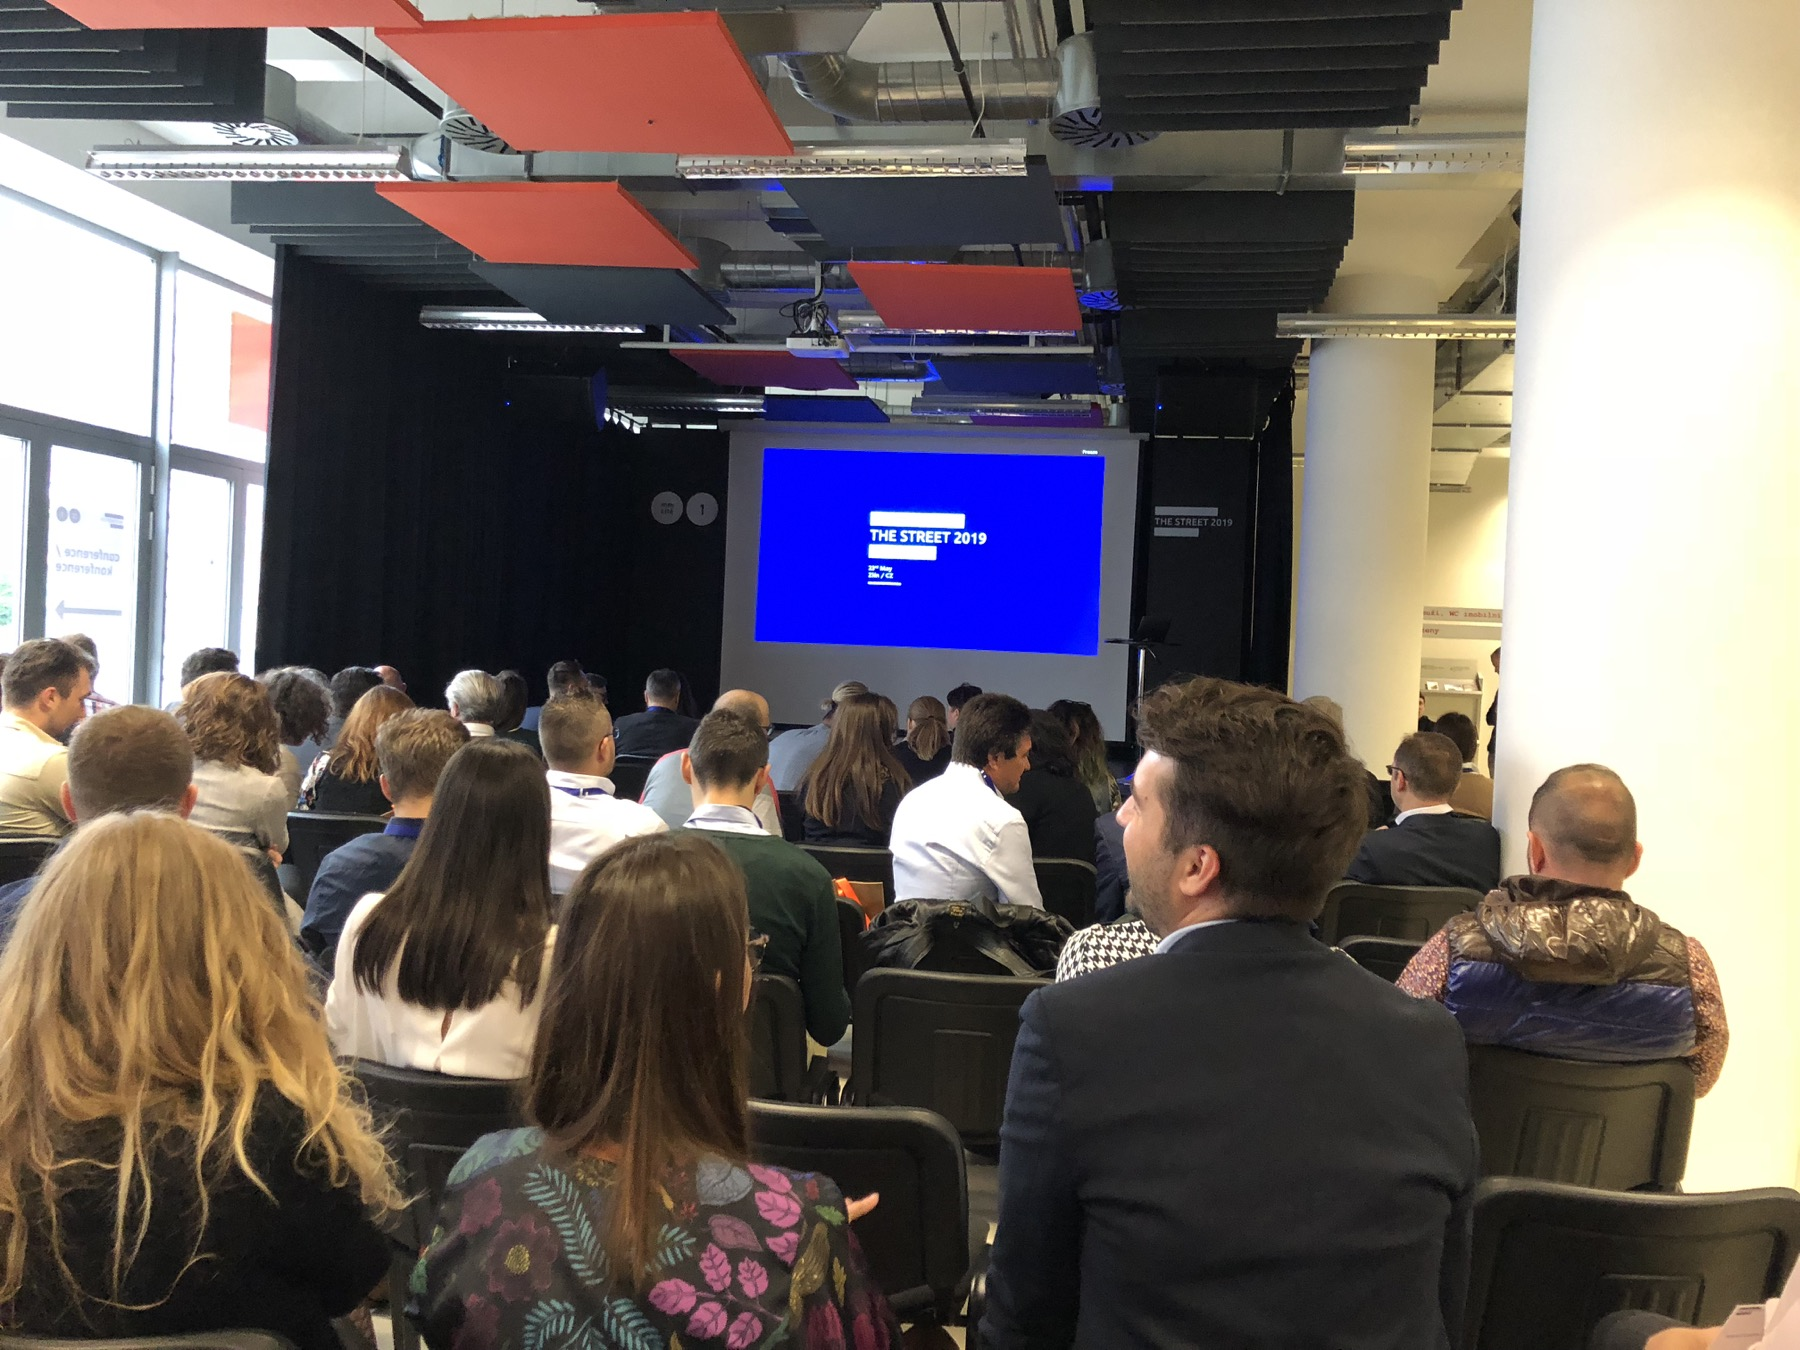 inside the conference_resized_07:25:2019.jpg